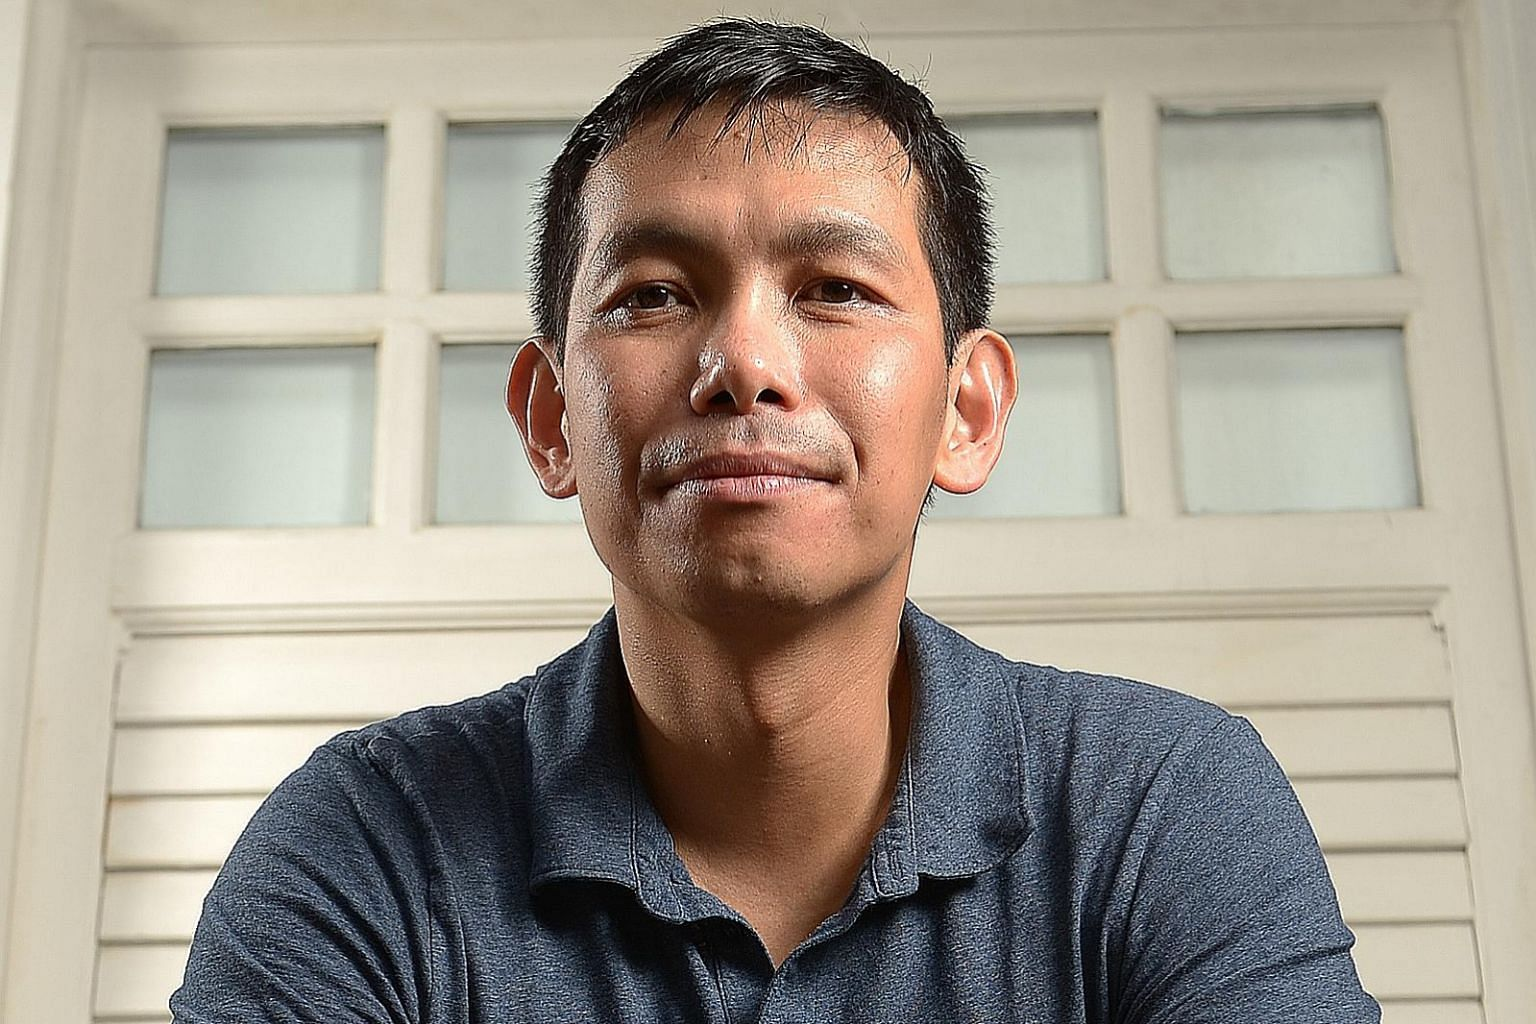 Now based in New York, Singapore poet Jee Leong Koh (above) says he is humbled by the Financial Times' recognition for his collection, Steep Tea.